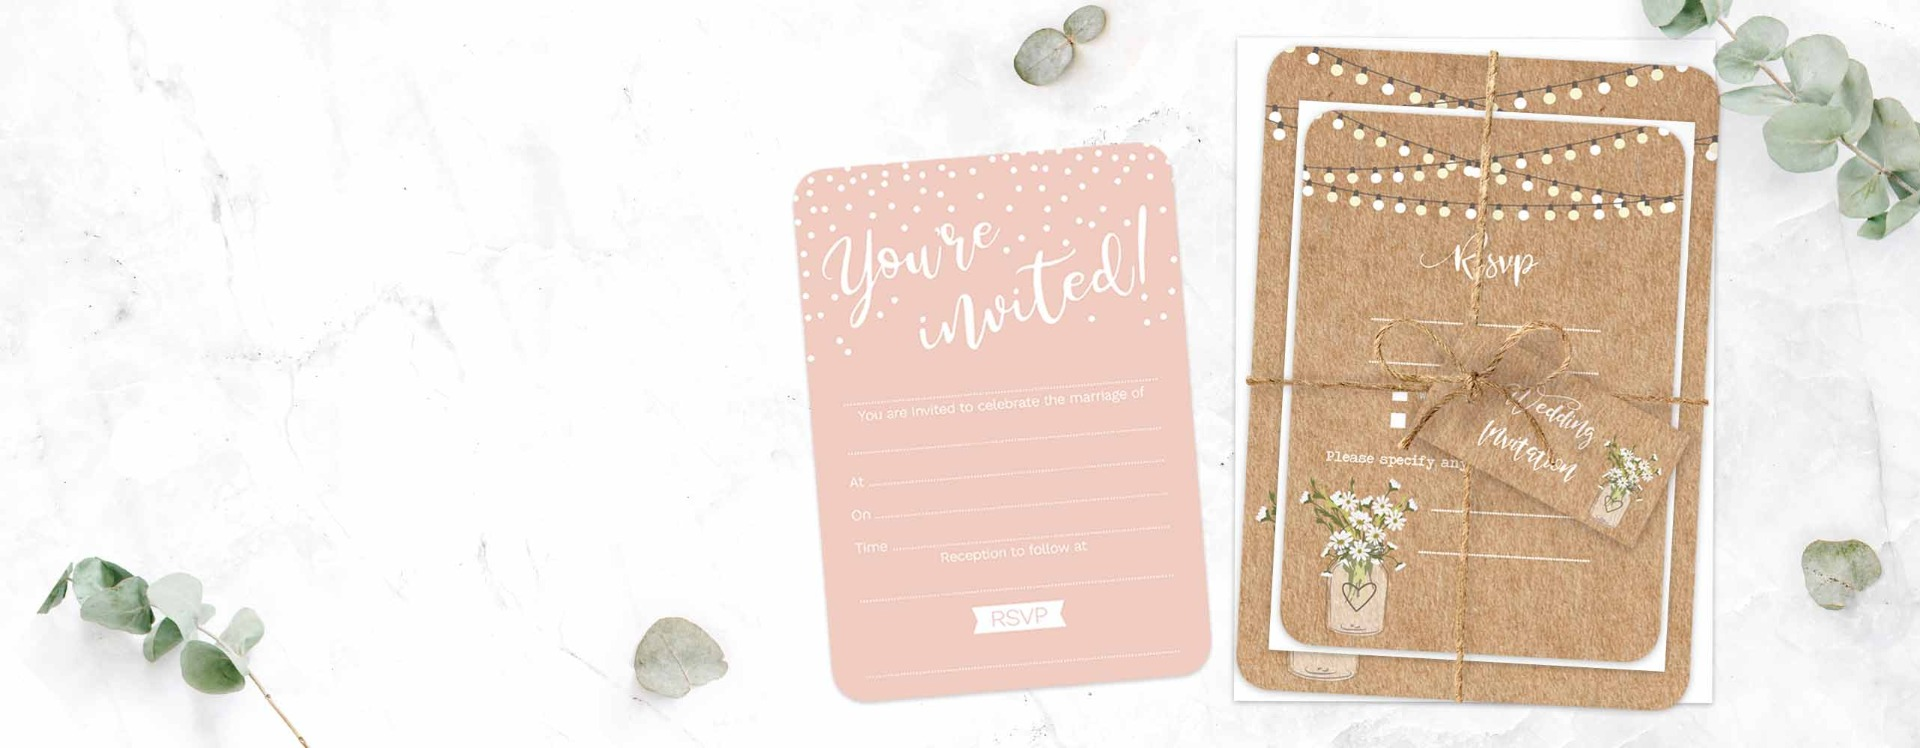 Wedding Invitations Uk Free Samples: Wedding Stationery & Personalised Birthday Party